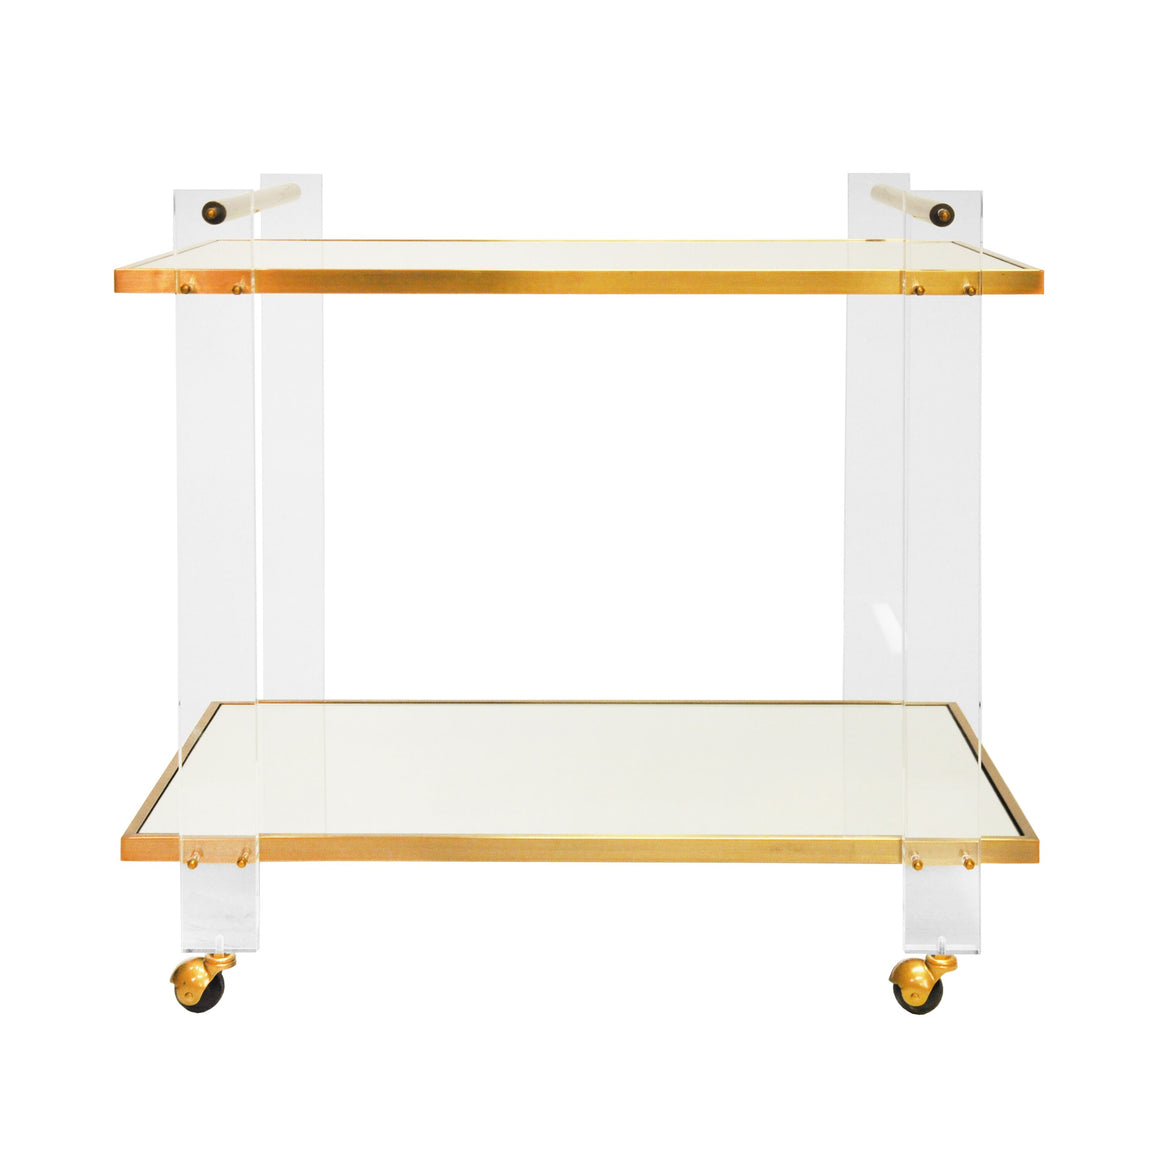 Worlds Away 2 Tier Clear Acrylic Bar Cart with Mirror Shelves - Brass